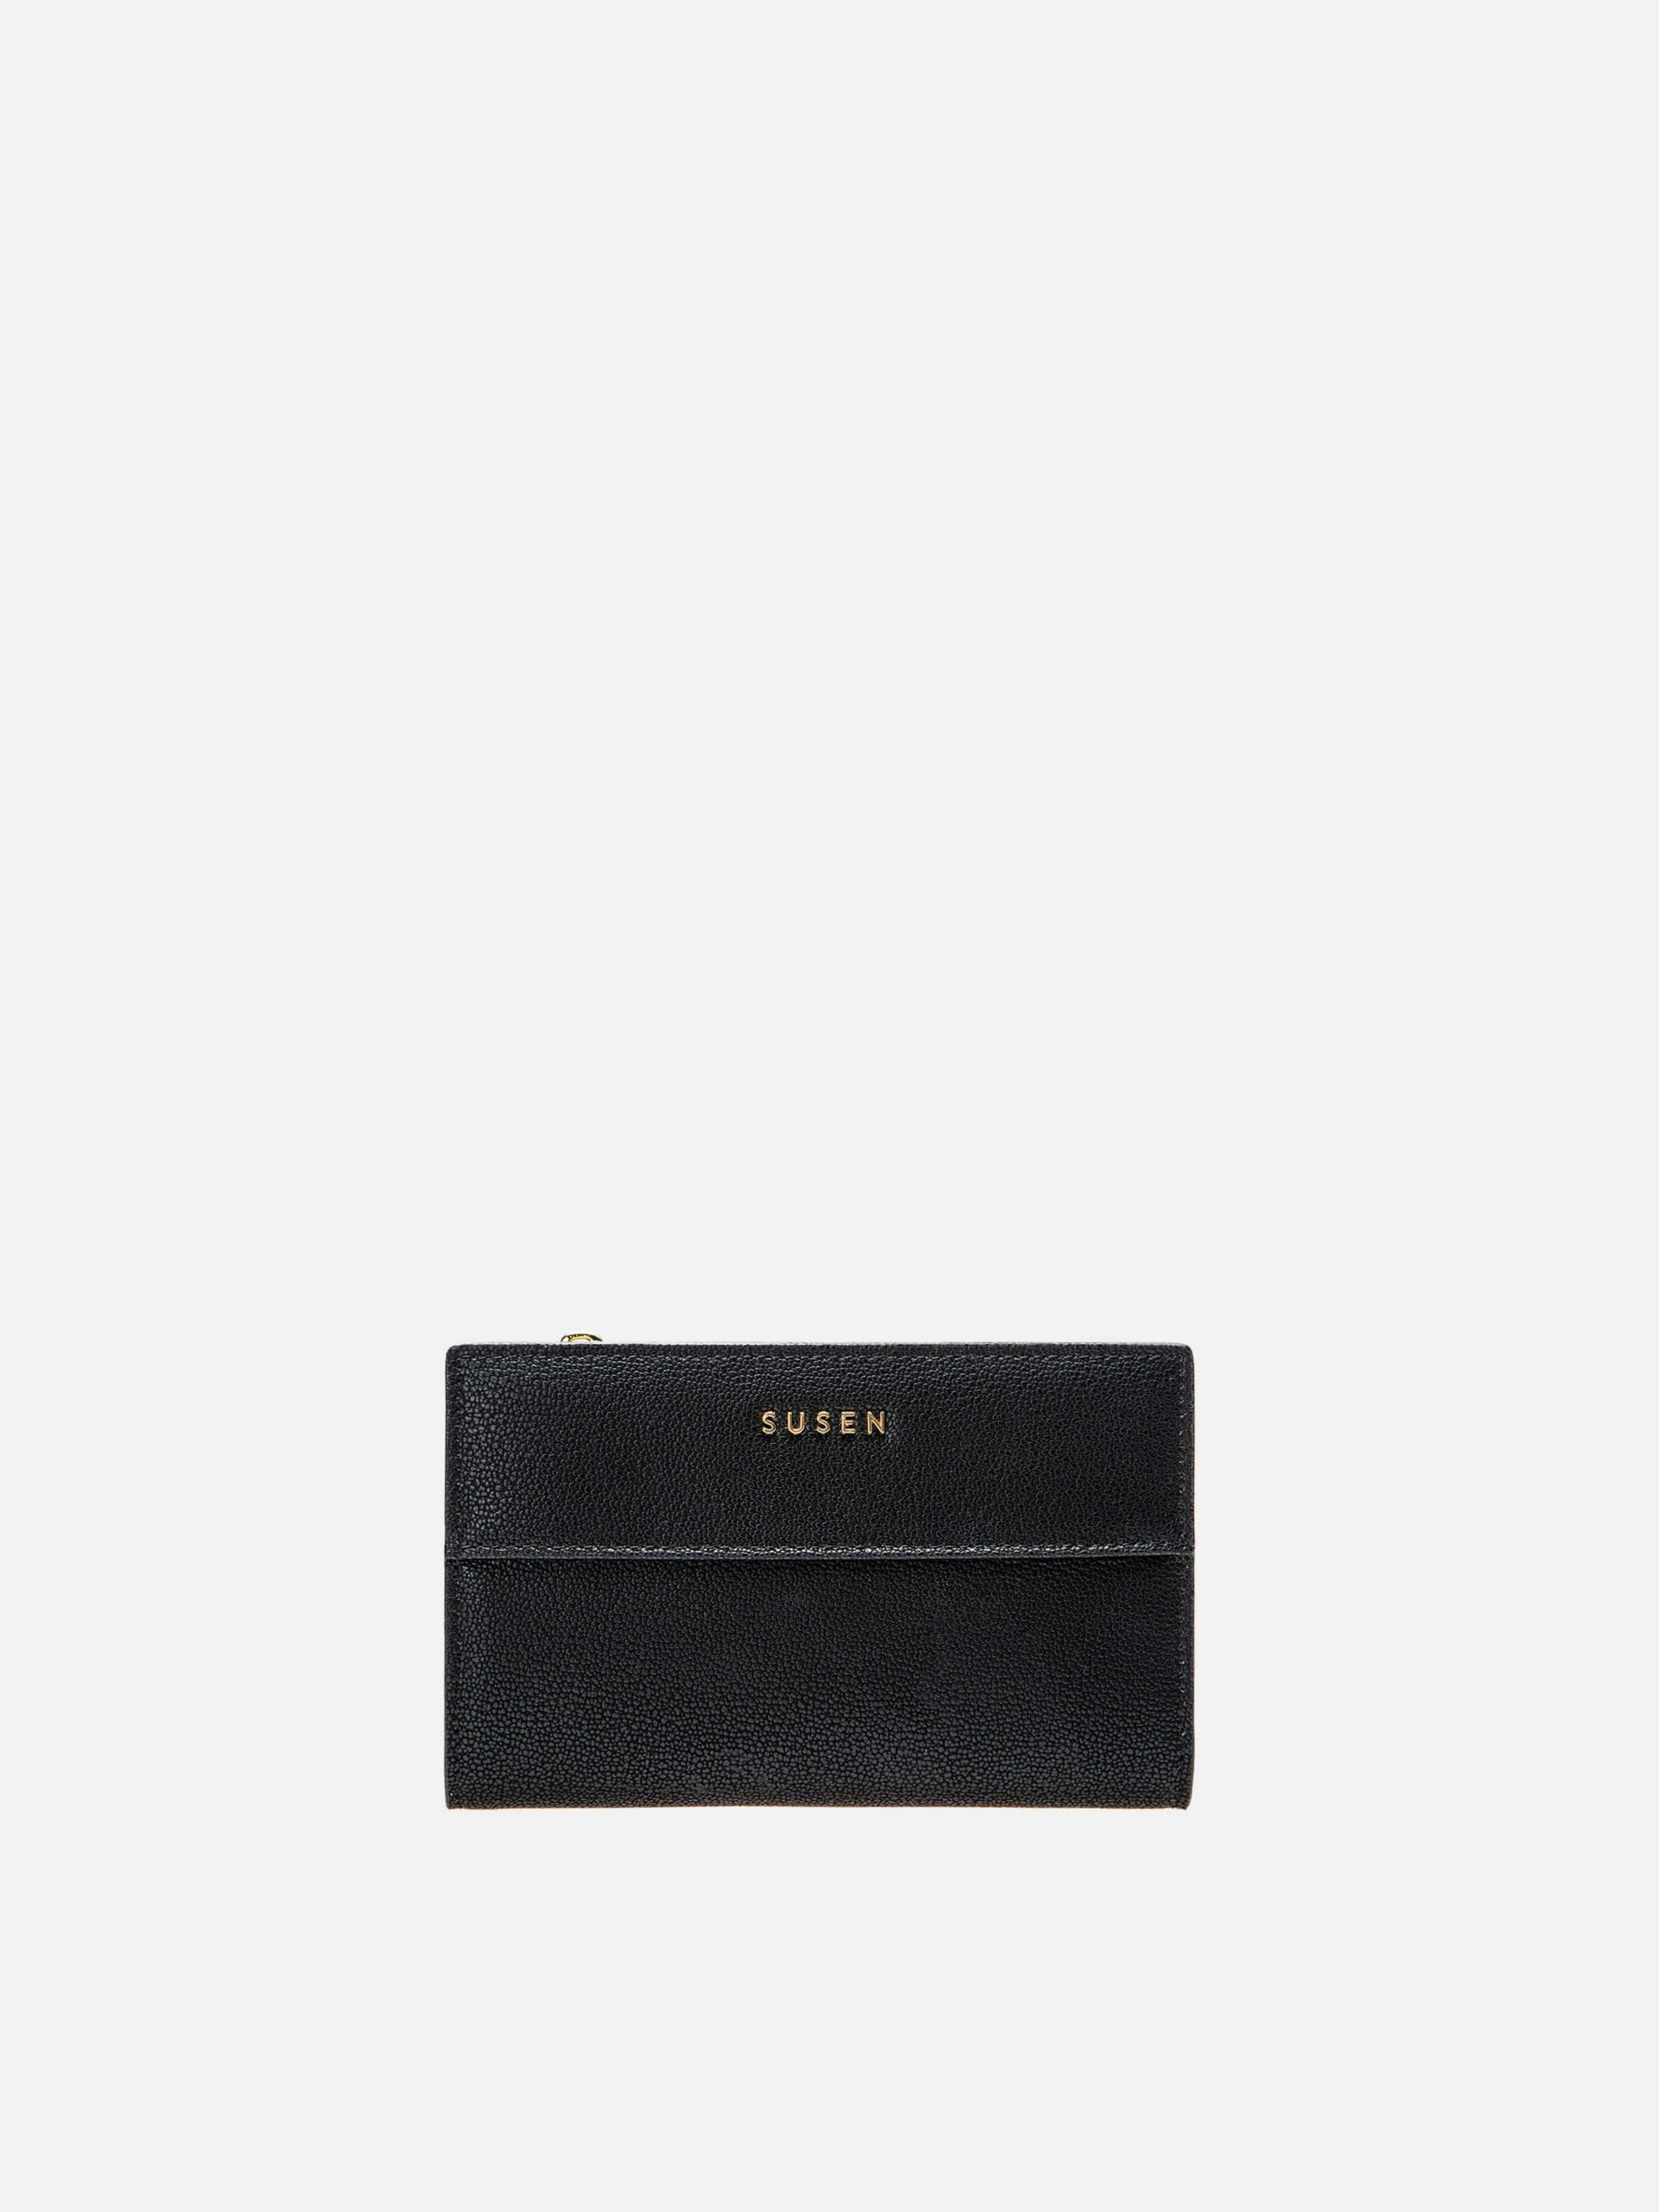 Short Leather Wallets Checkbook Wallet - Black